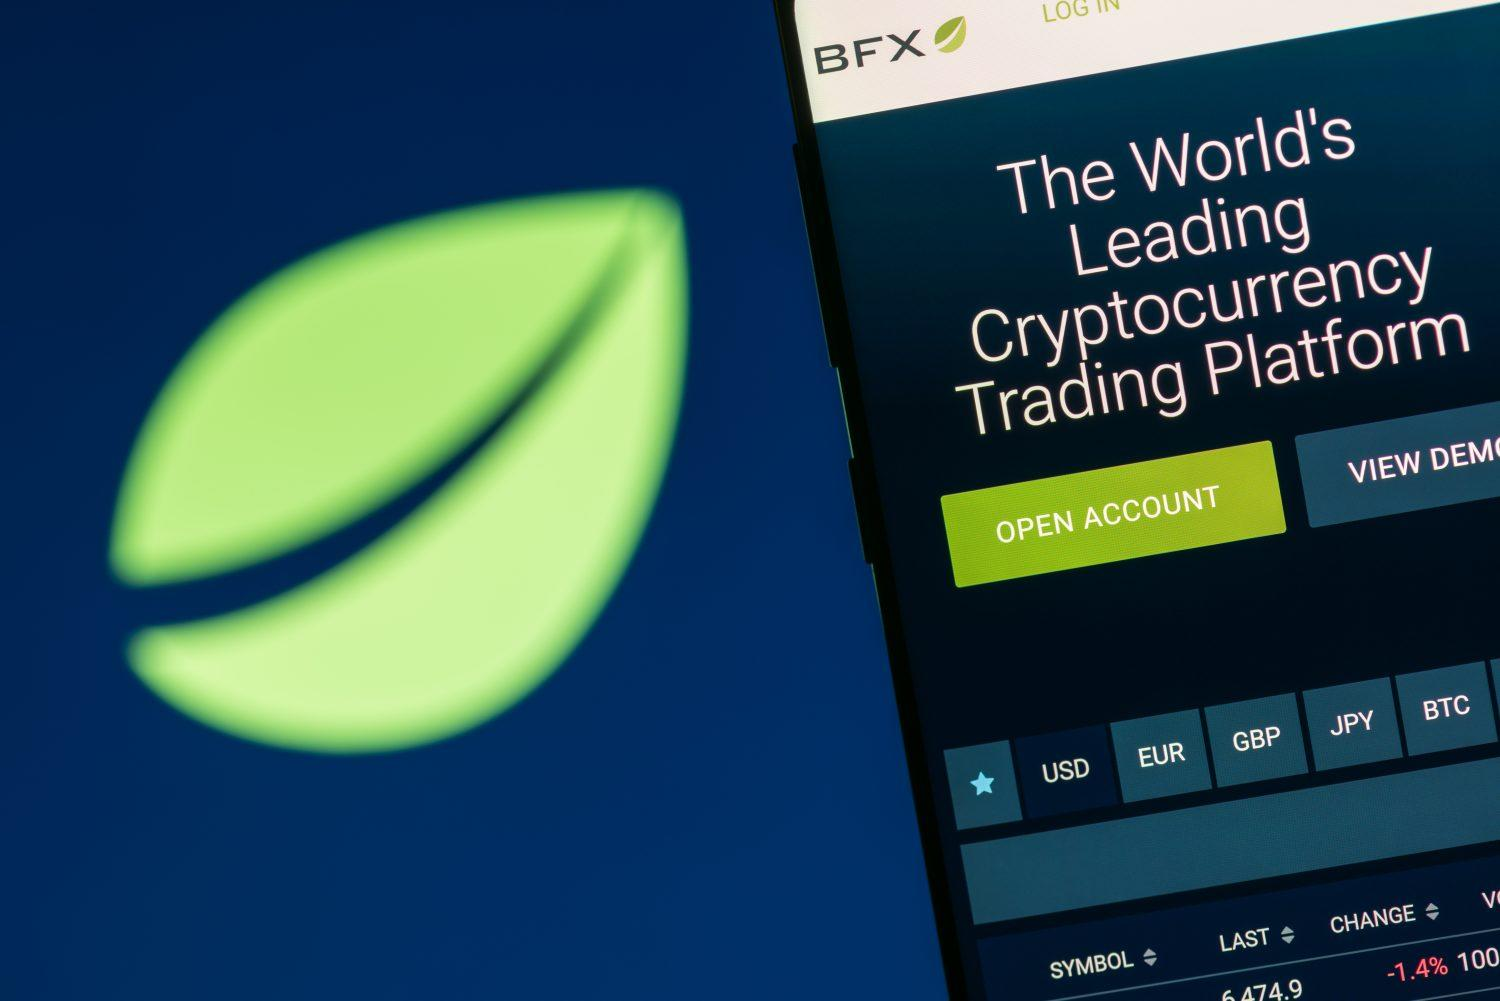 $500K, 60 Lawyers: Filing Reveals Costs of Bitfinex's Fight With NY Regulators